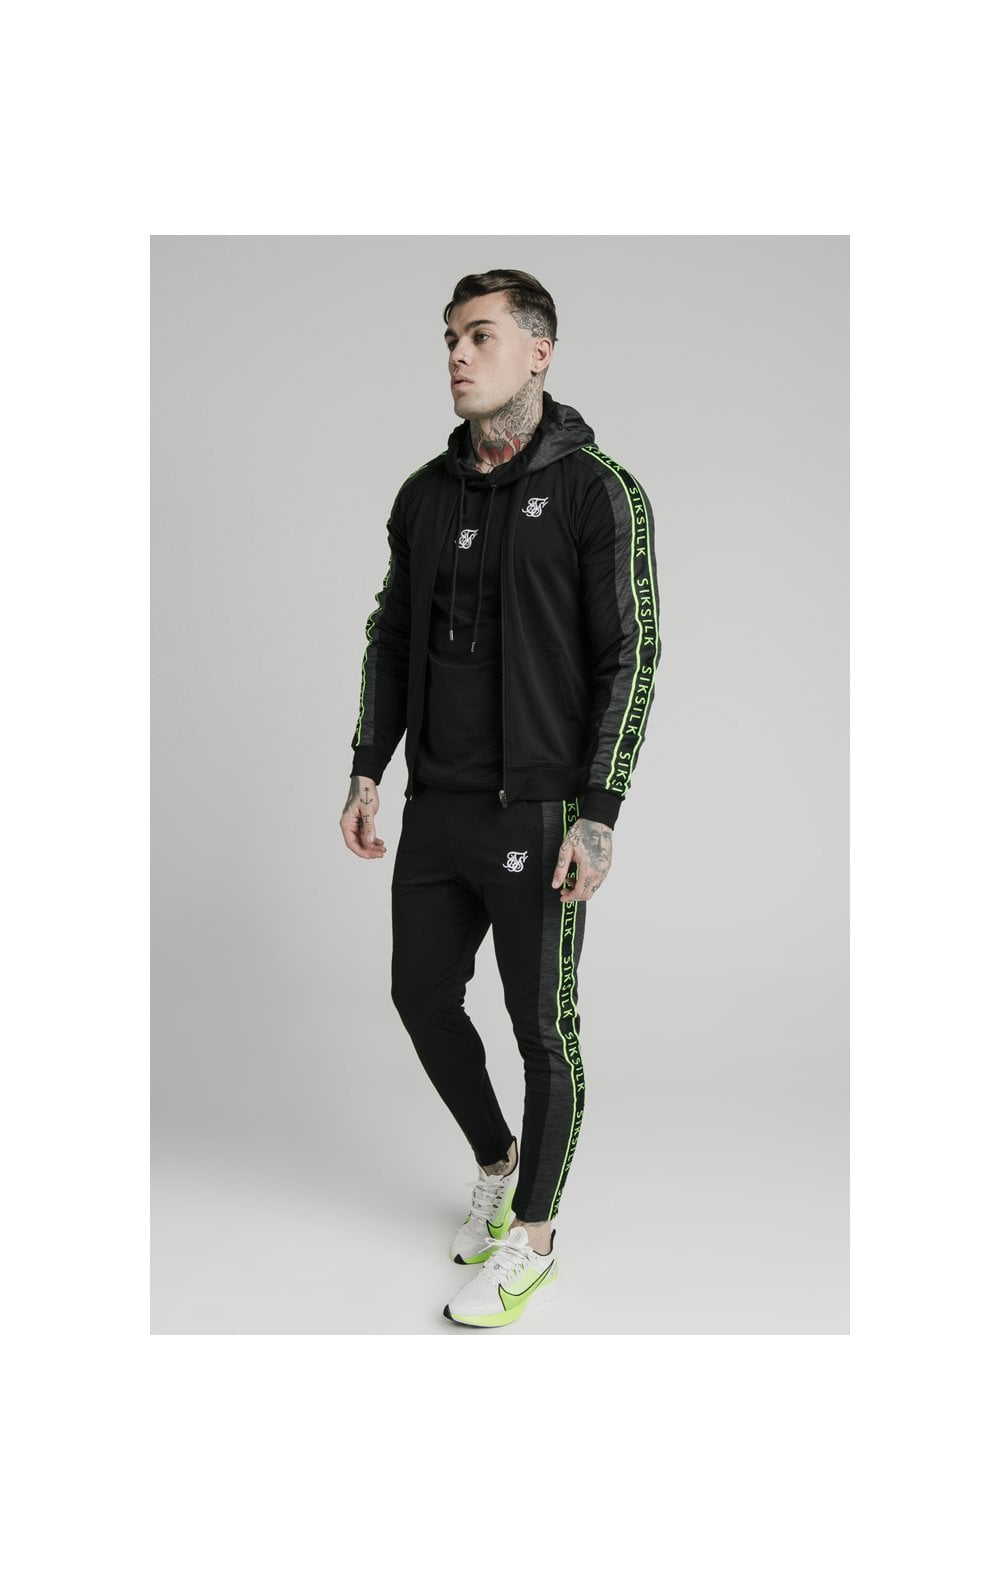 Load image into Gallery viewer, SikSilk Hyper Tape Bomber Jacket - Black & Neon Fluro (2)